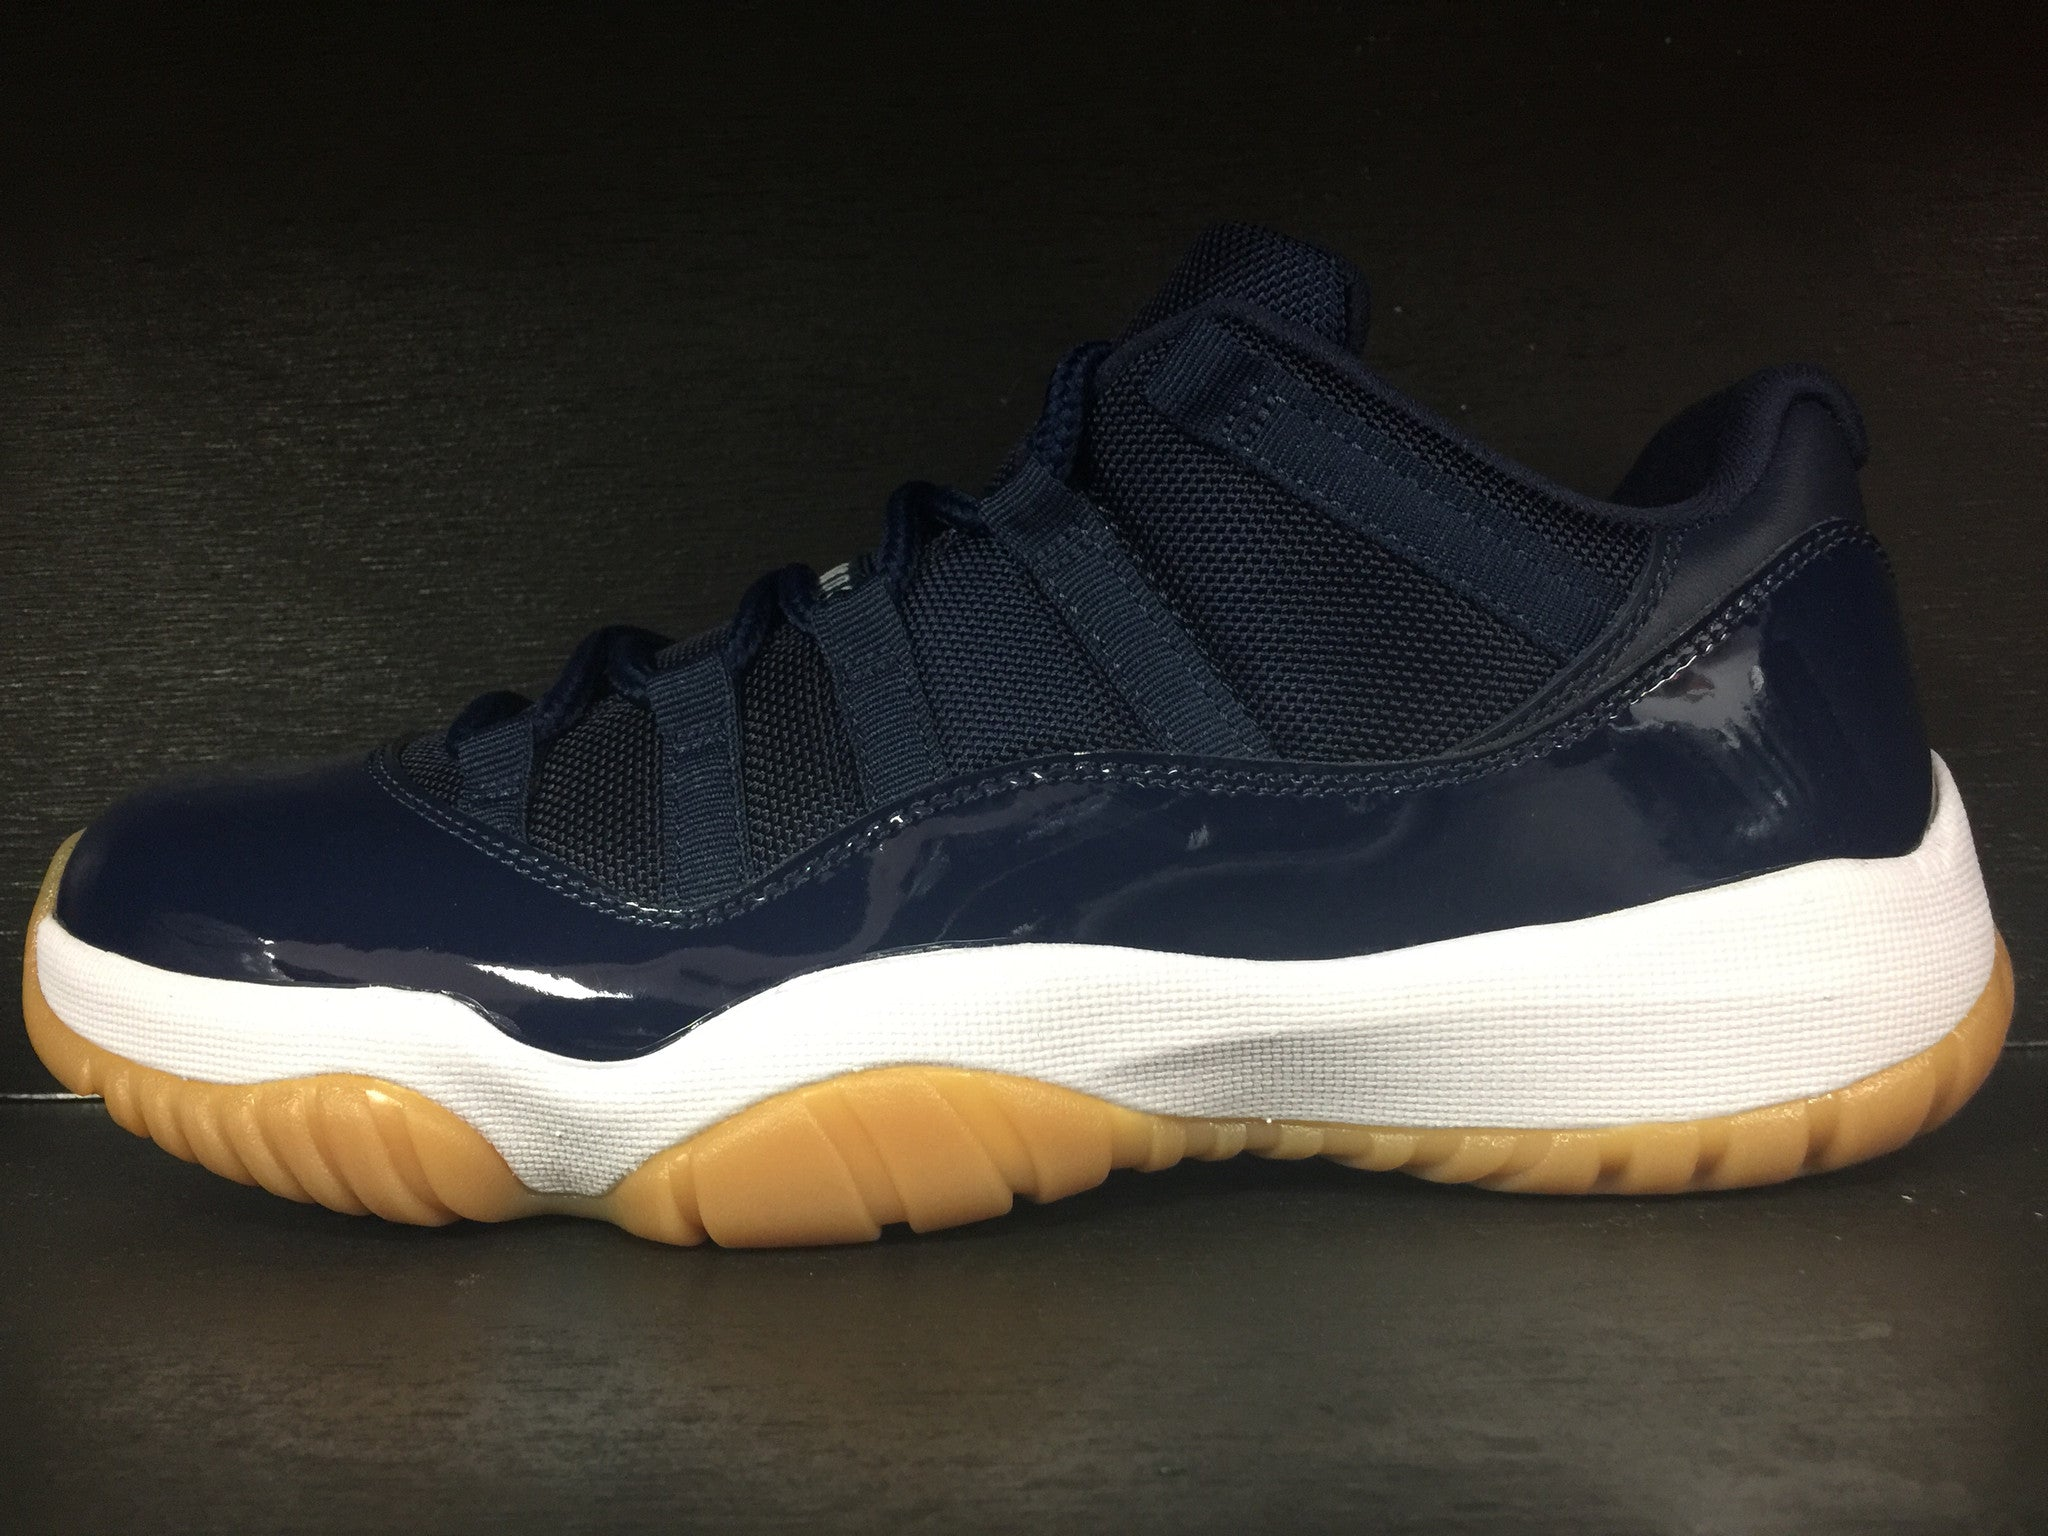 Air Jordan 11 Retro Low 'Navy'